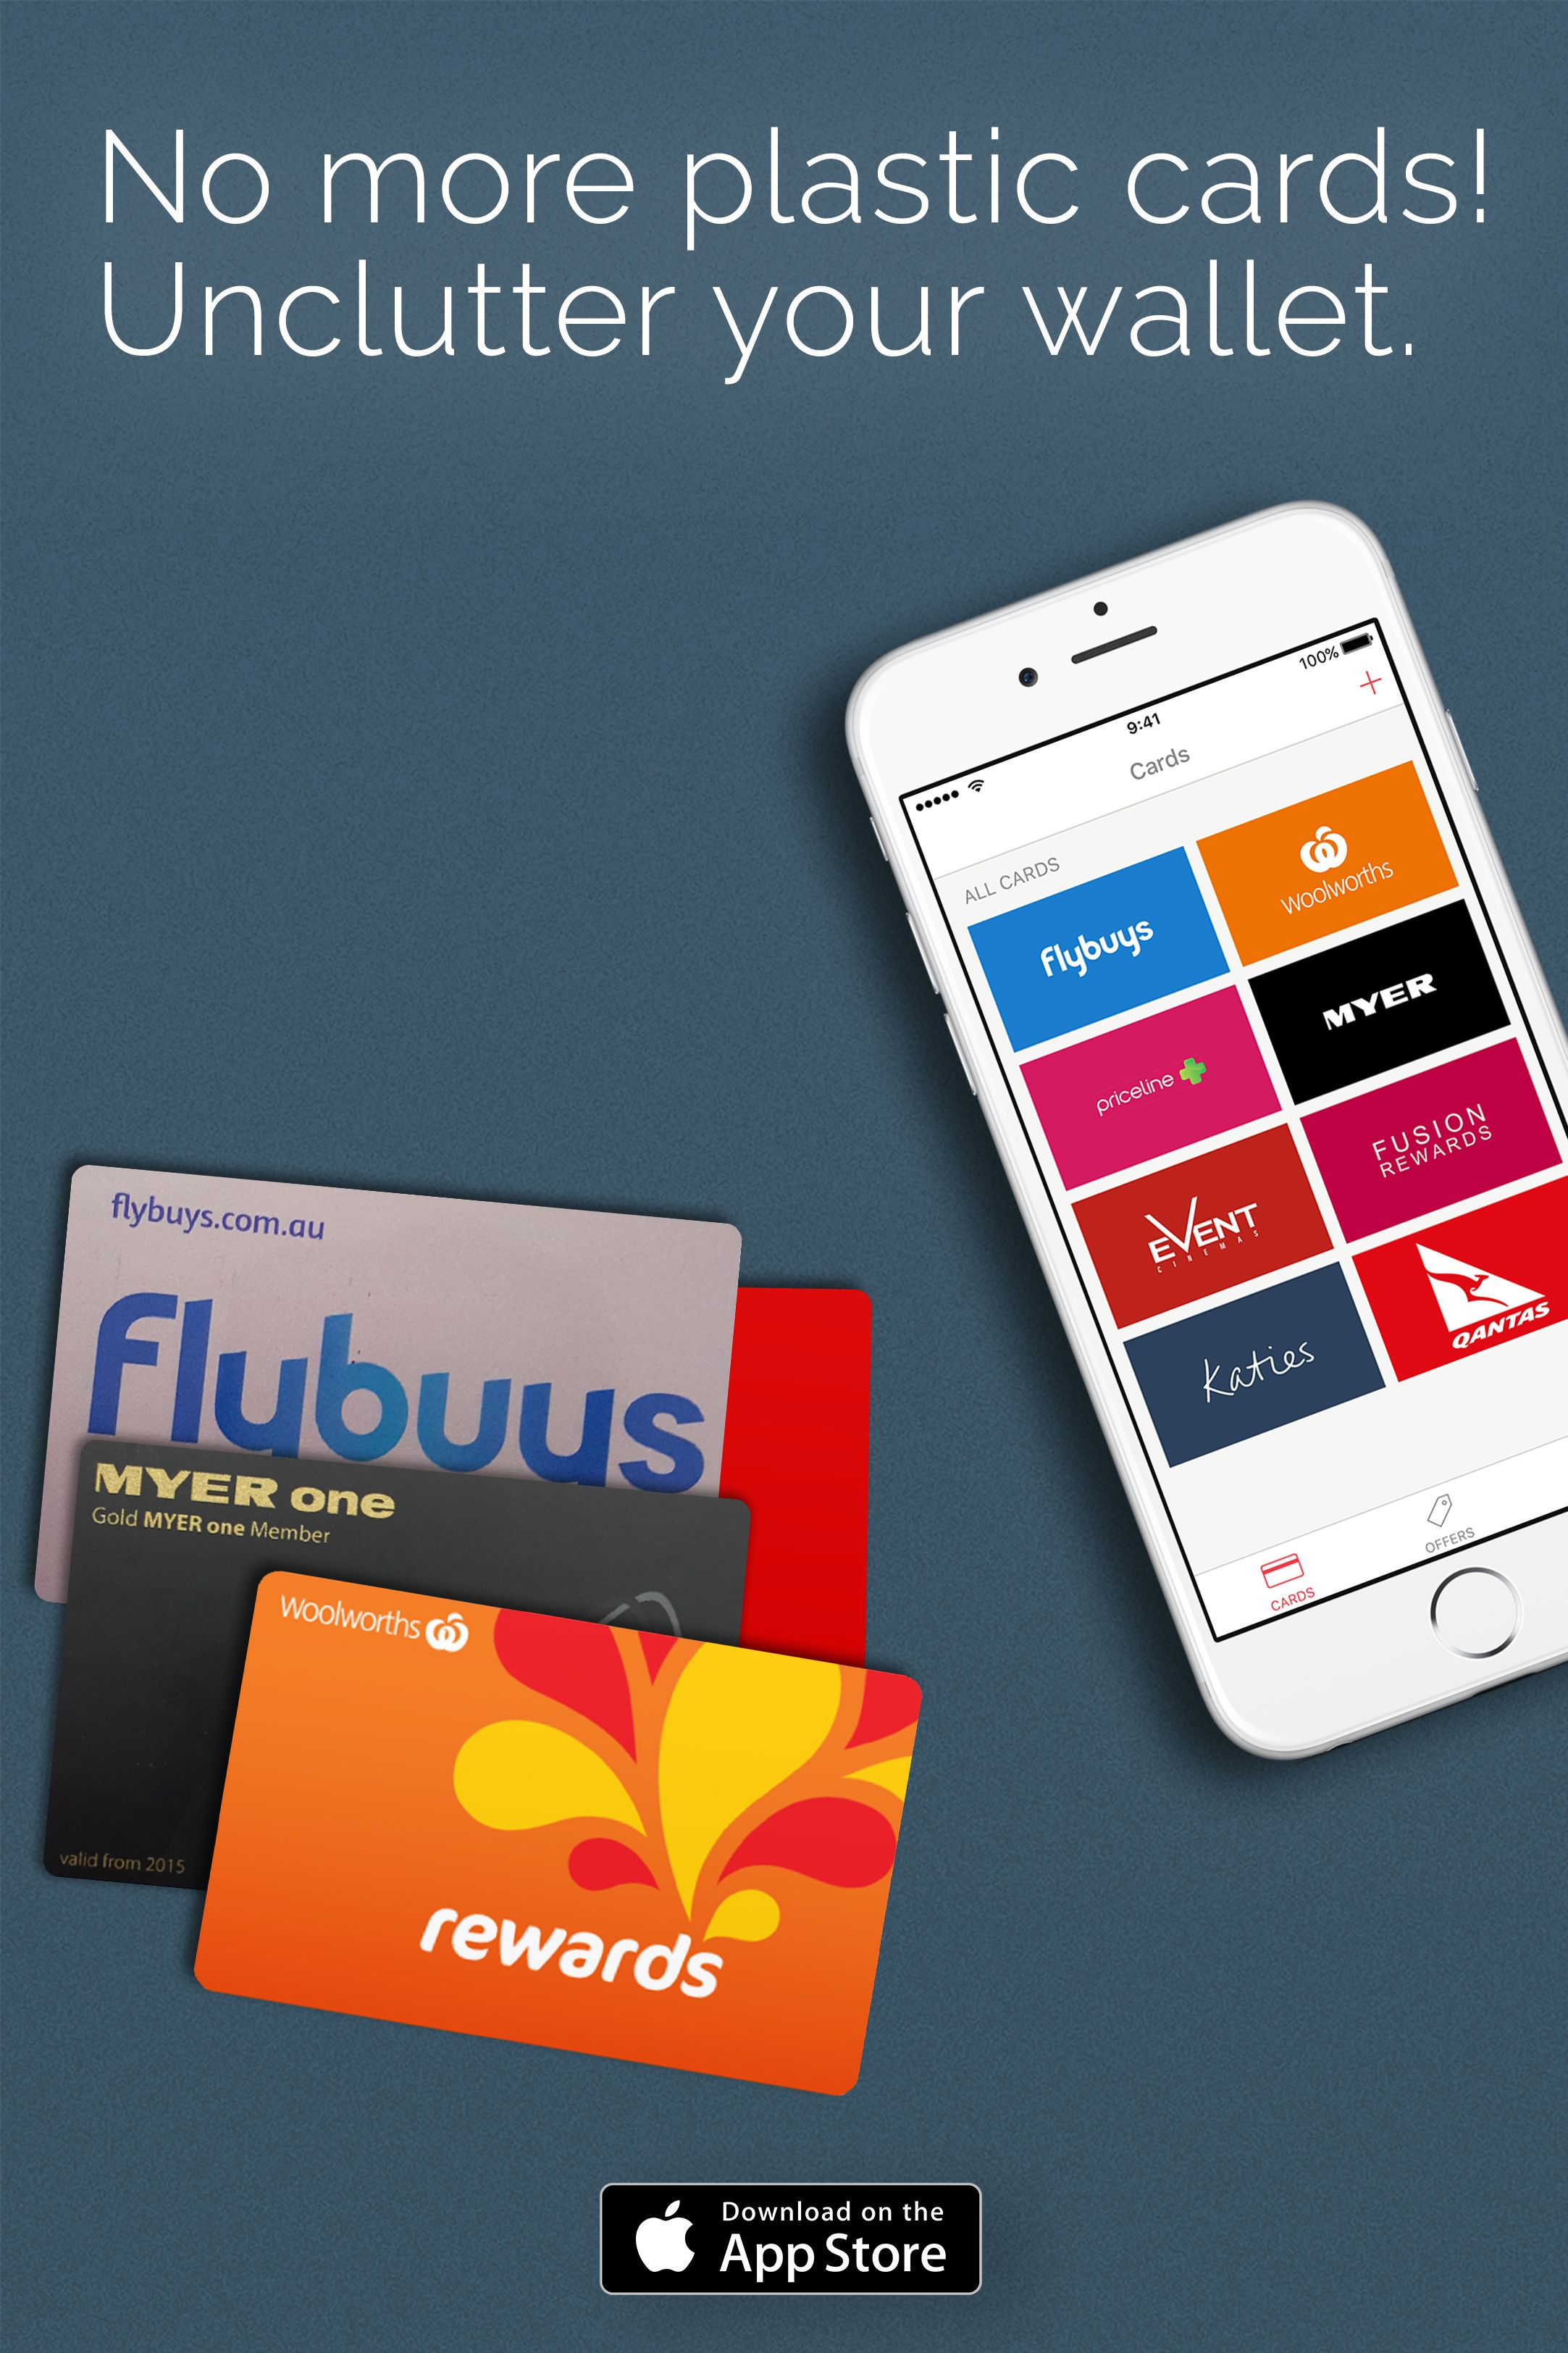 No more plastic cards! All your loyalty cards in one free app ...